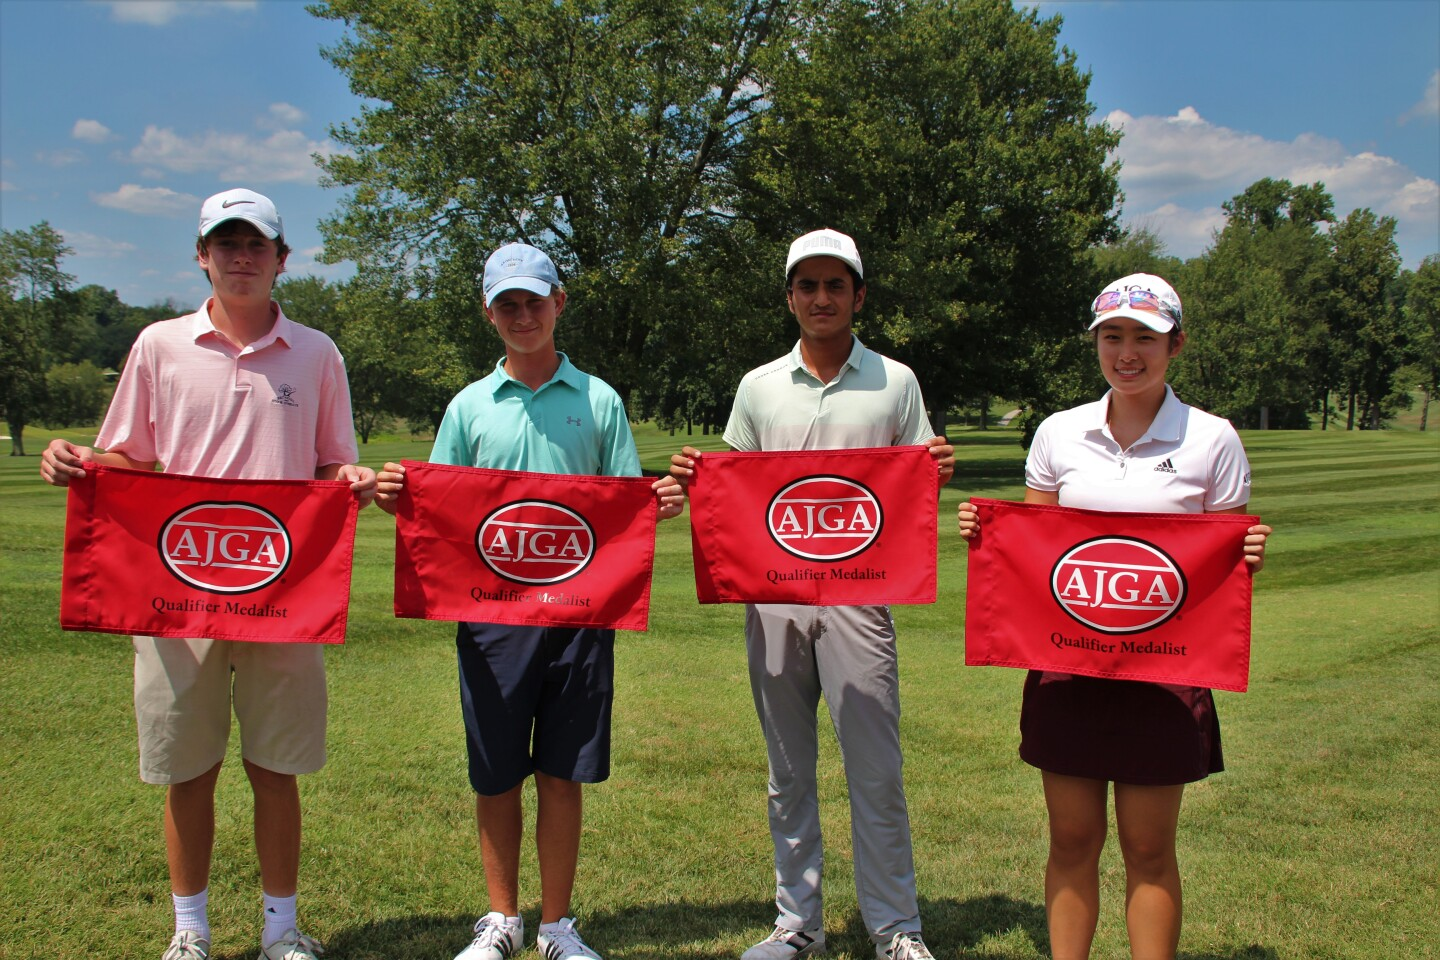 Maddaloni, Hemsley, Singh, and Zhang Qualifier Medalists